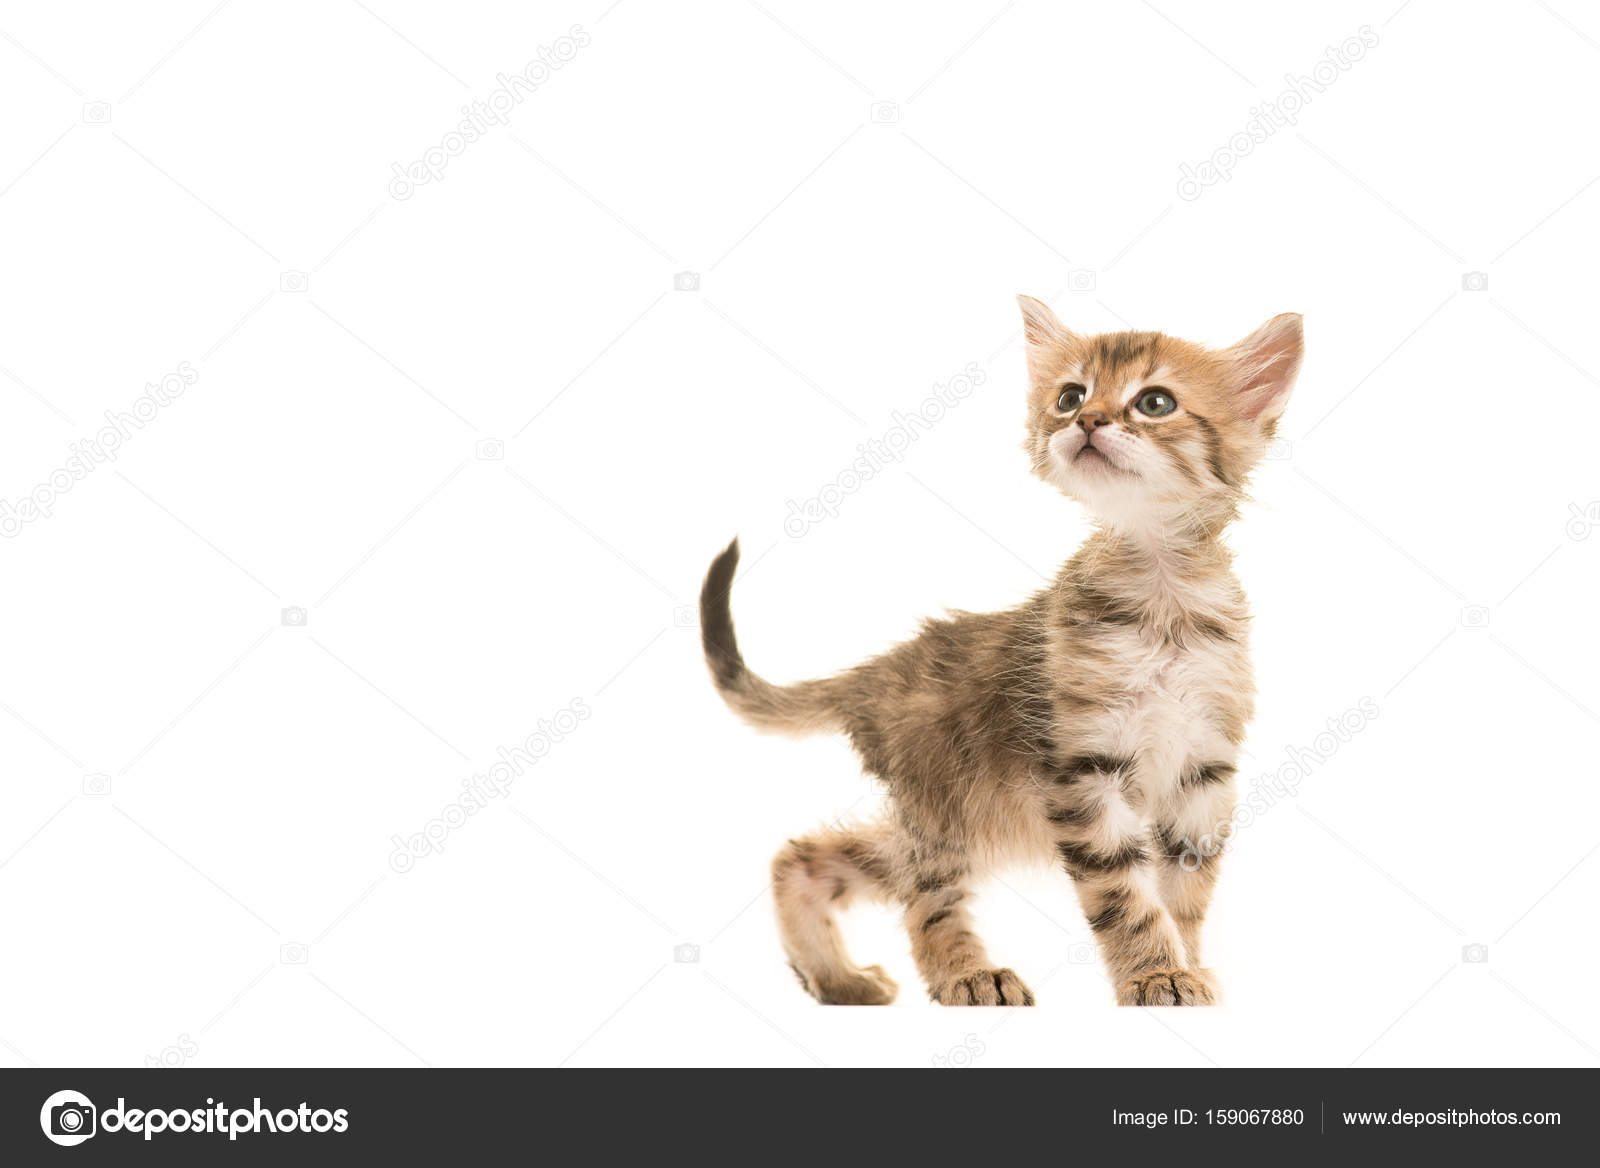 Cute Tabby Turkish Angora Baby Cat Walking And Looking Up Isolated